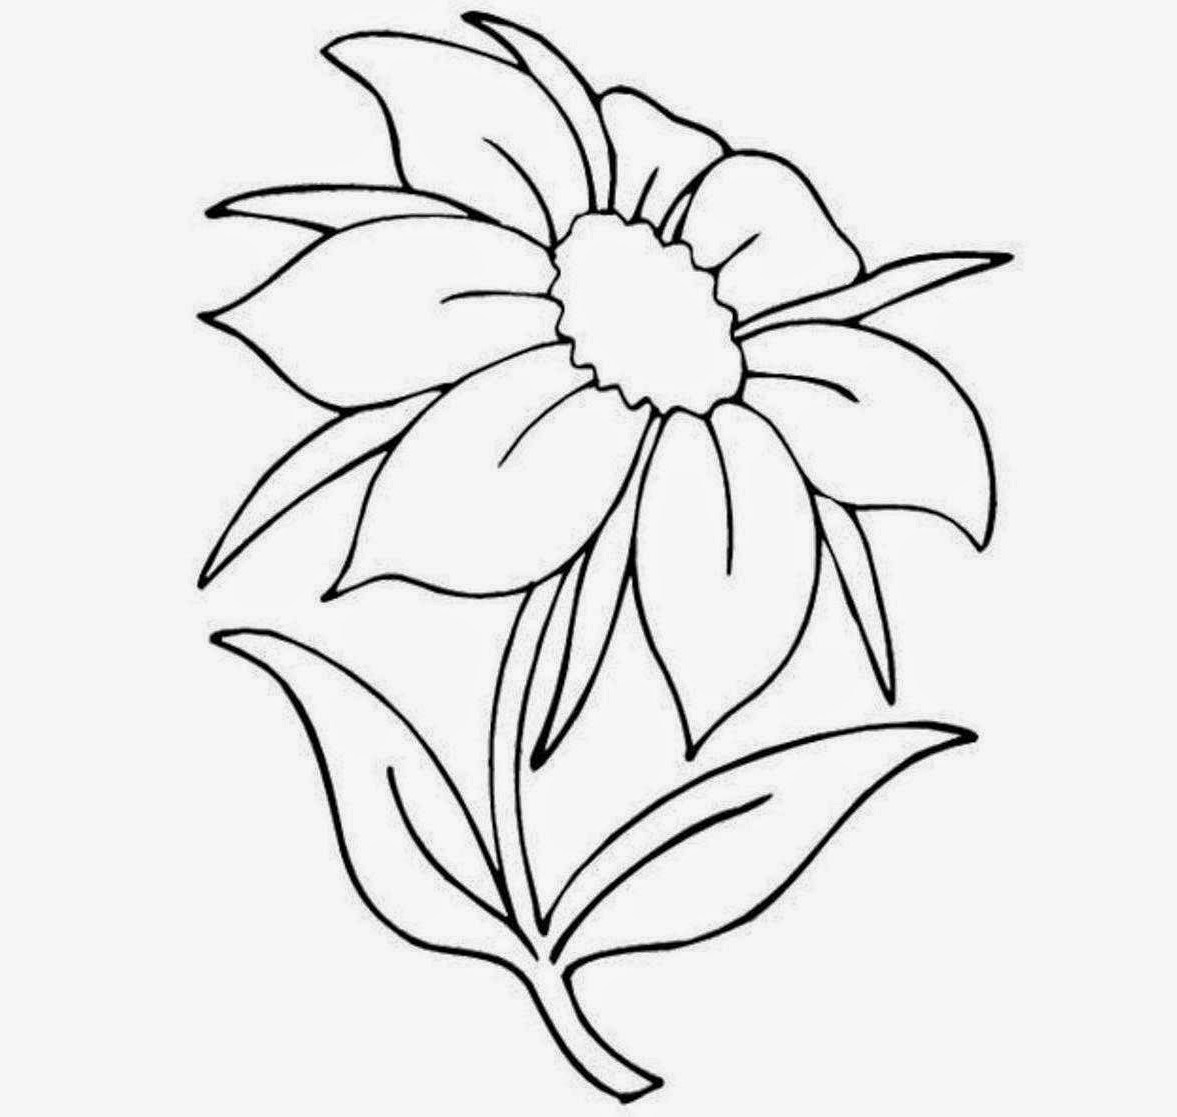 Hibiscus Flower Drawing Step By Step At Getdrawings Free For